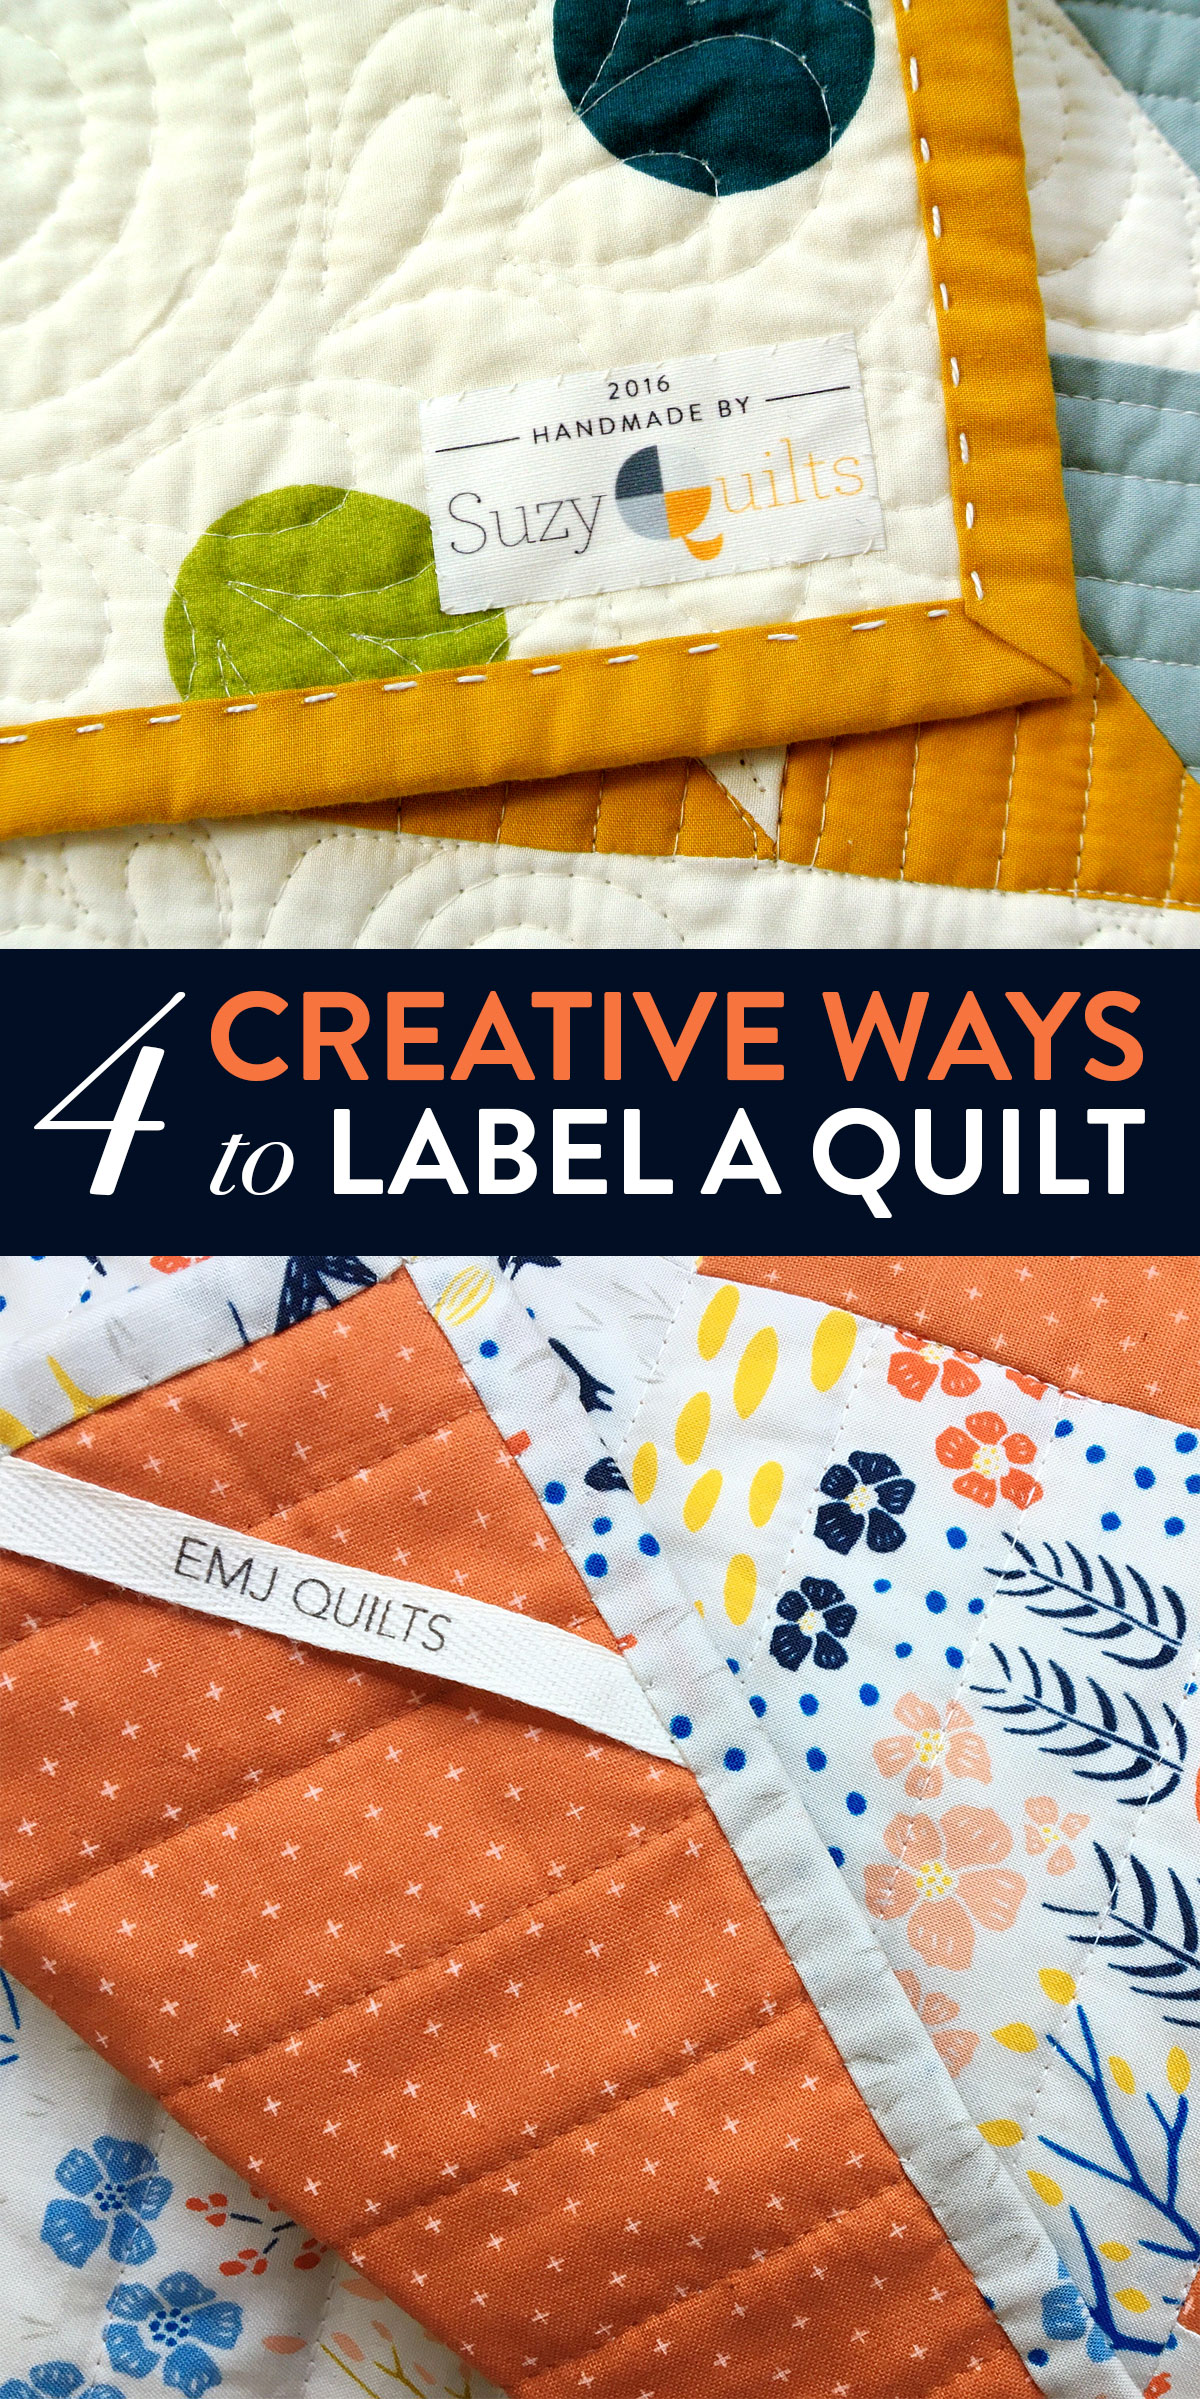 4 Creative Ways to Label A Quilt | Suzy Quilts https://suzyquilts.com/4-creative-ways-to-label-a-quilt